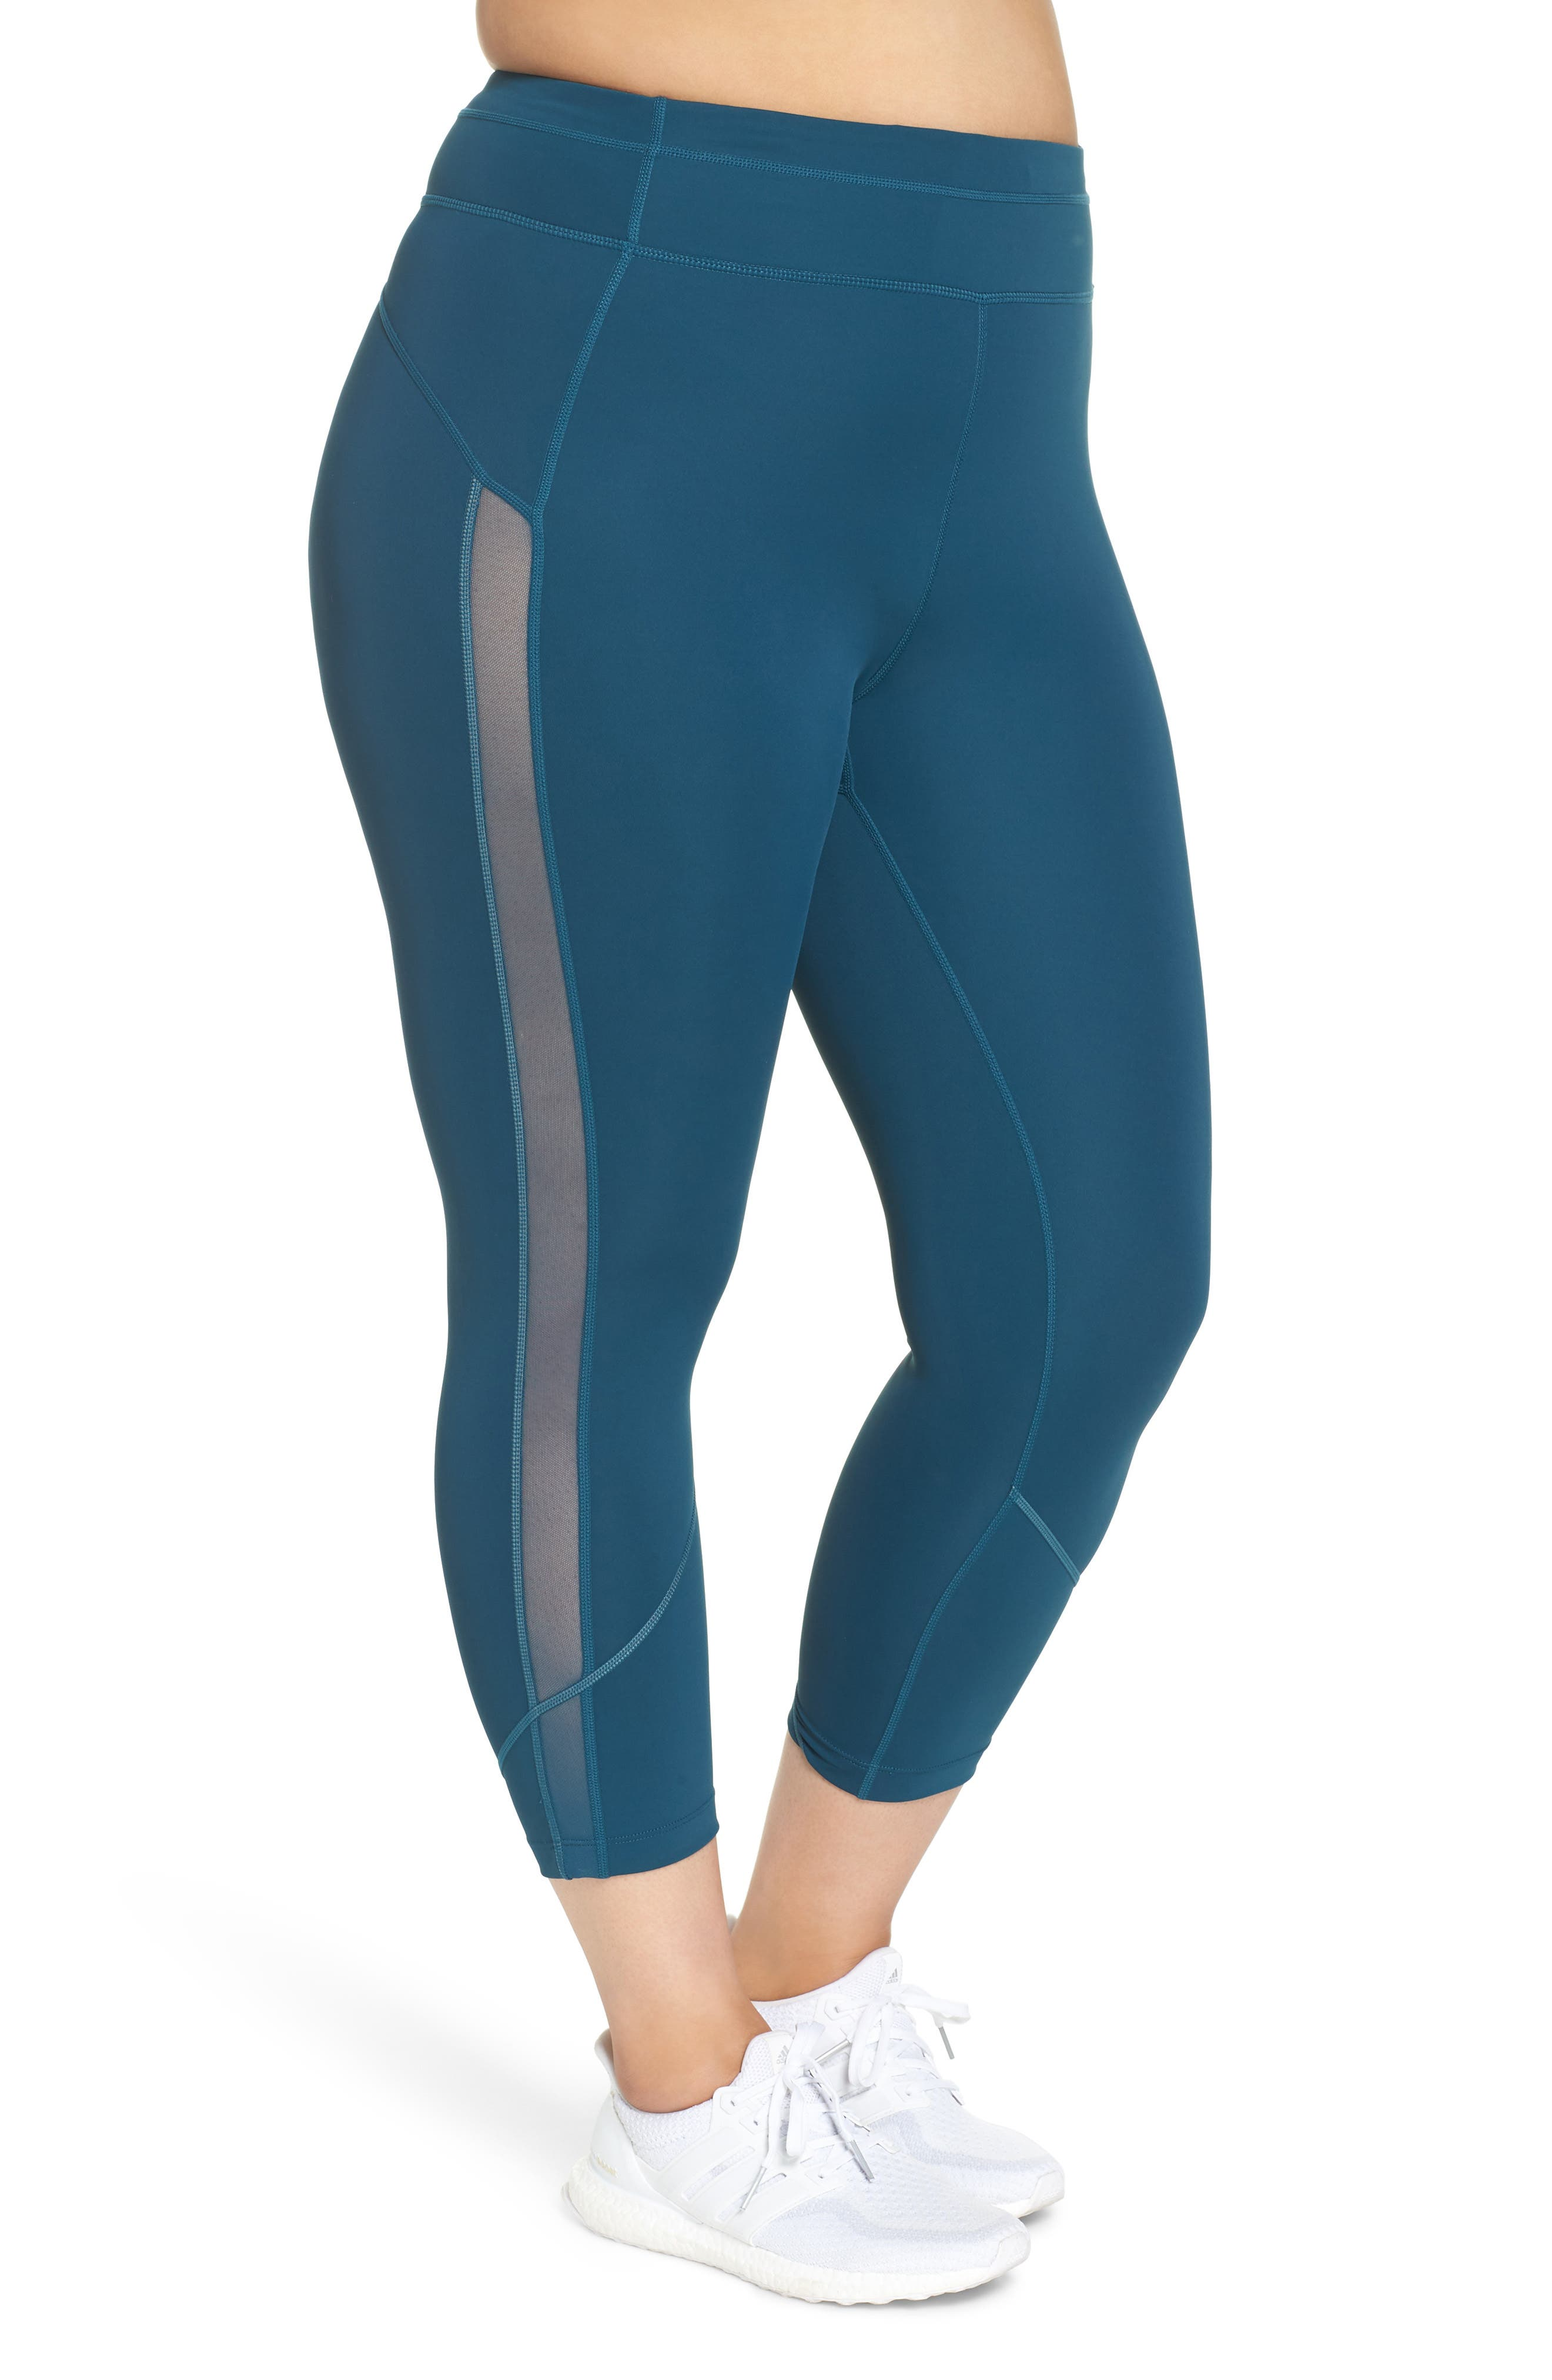 ZELLA,                             All In High Rise Crop Tights,                             Alternate thumbnail 4, color,                             449